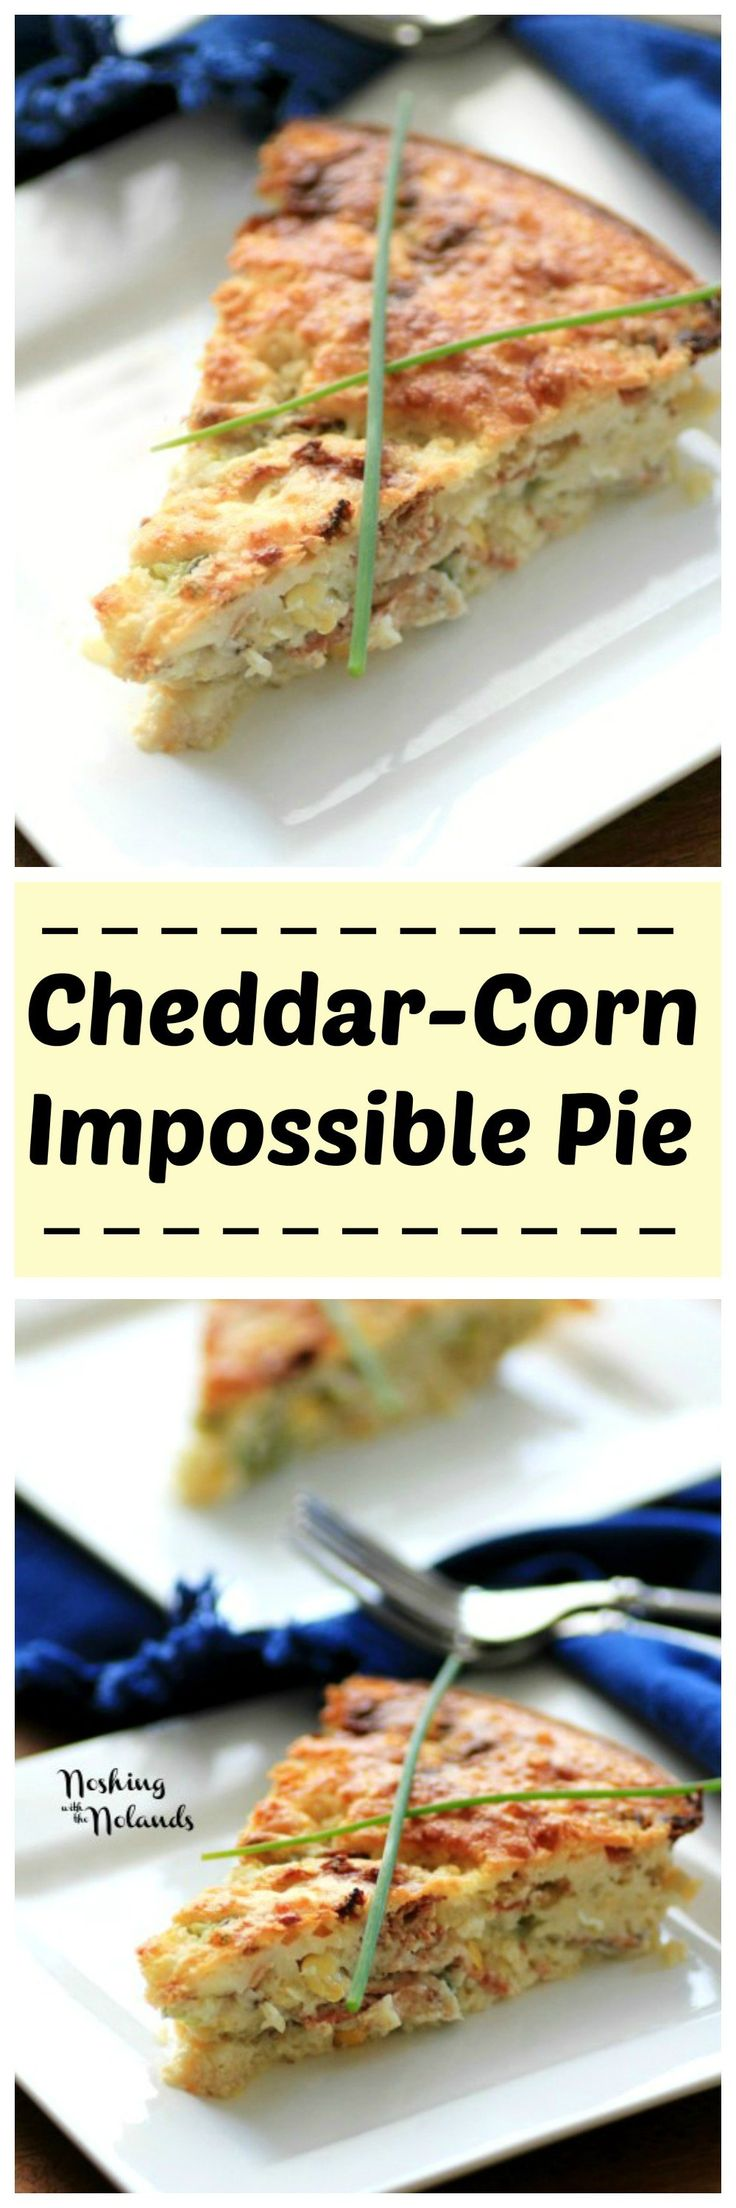 Mouth Watering Mondays - Cheddar Corn Impossible Pie is great for Mother's Day or so easy for any weeknight meal.